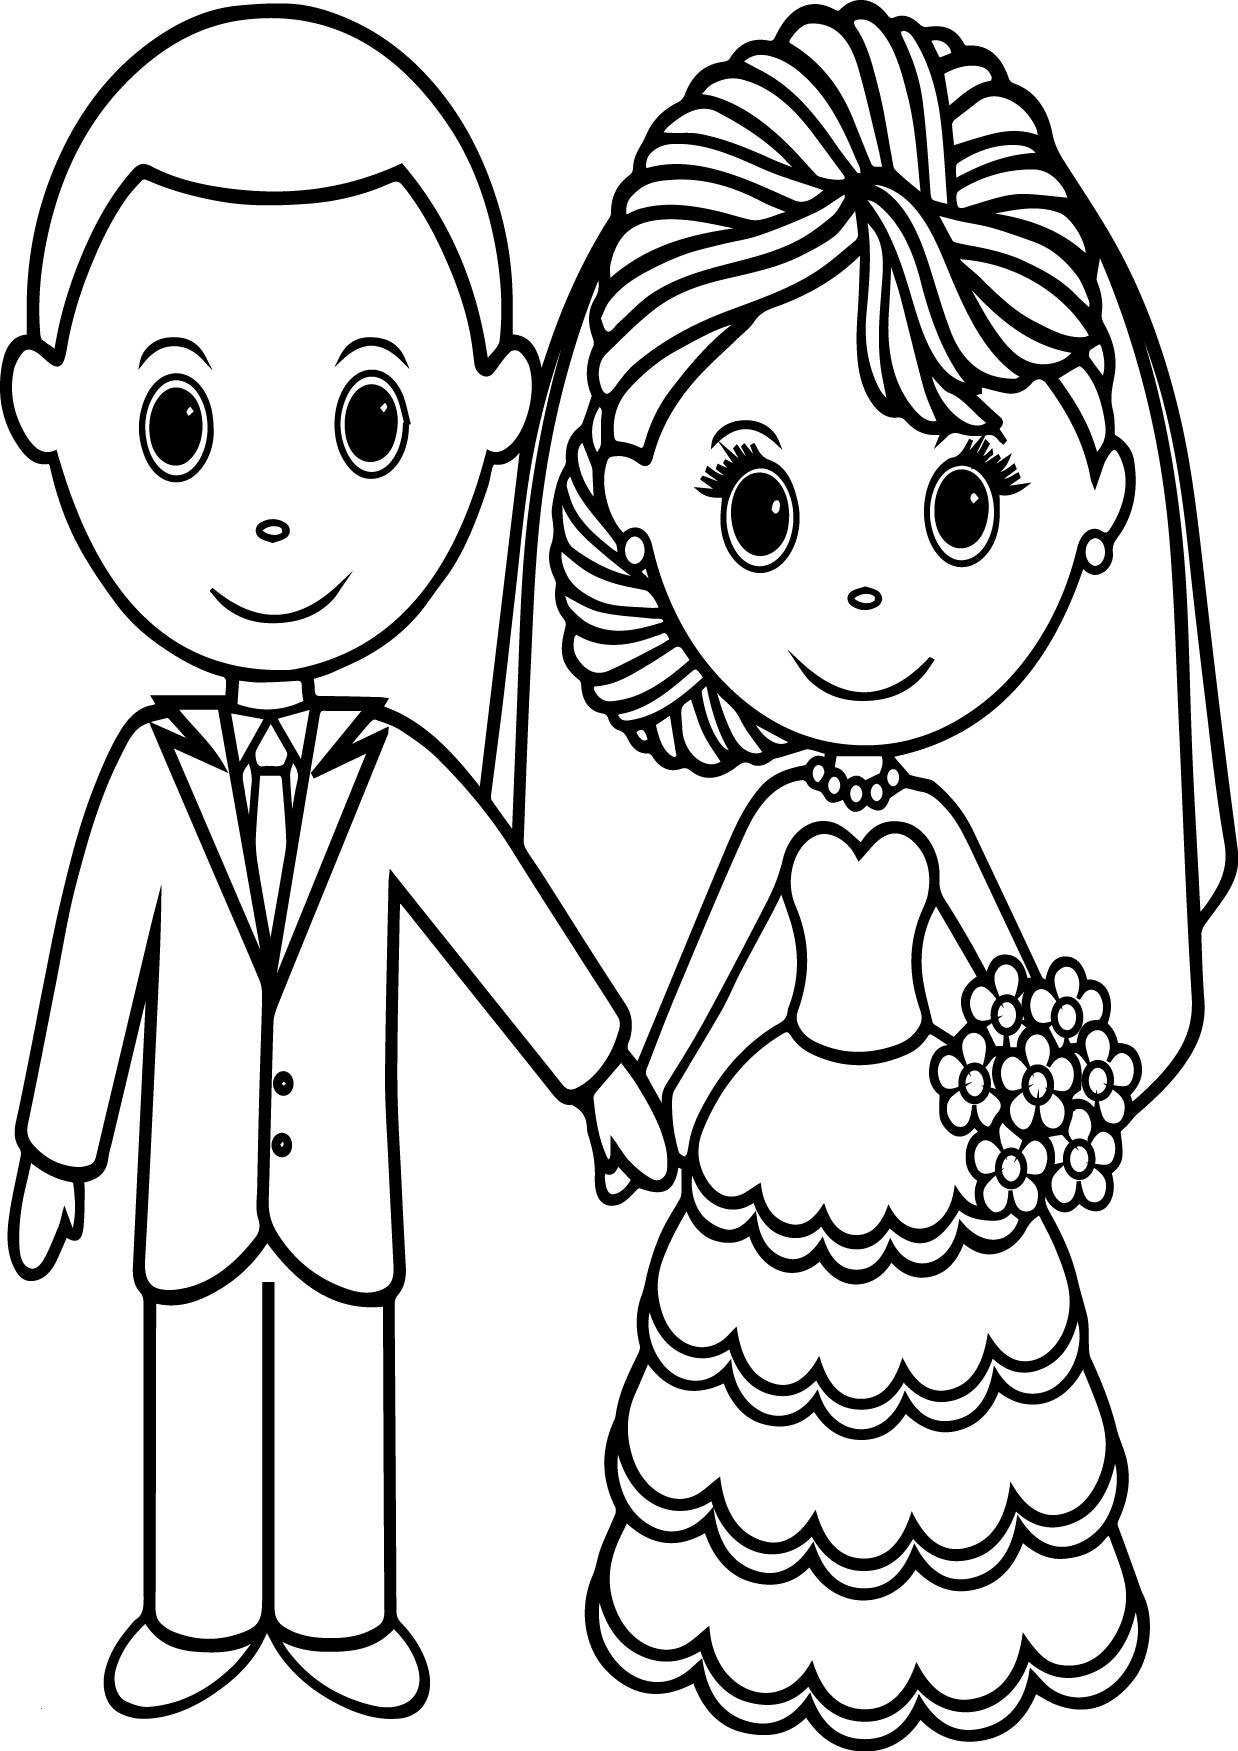 Personalized Wedding Coloring Pages  Collection 10p - Free For kids